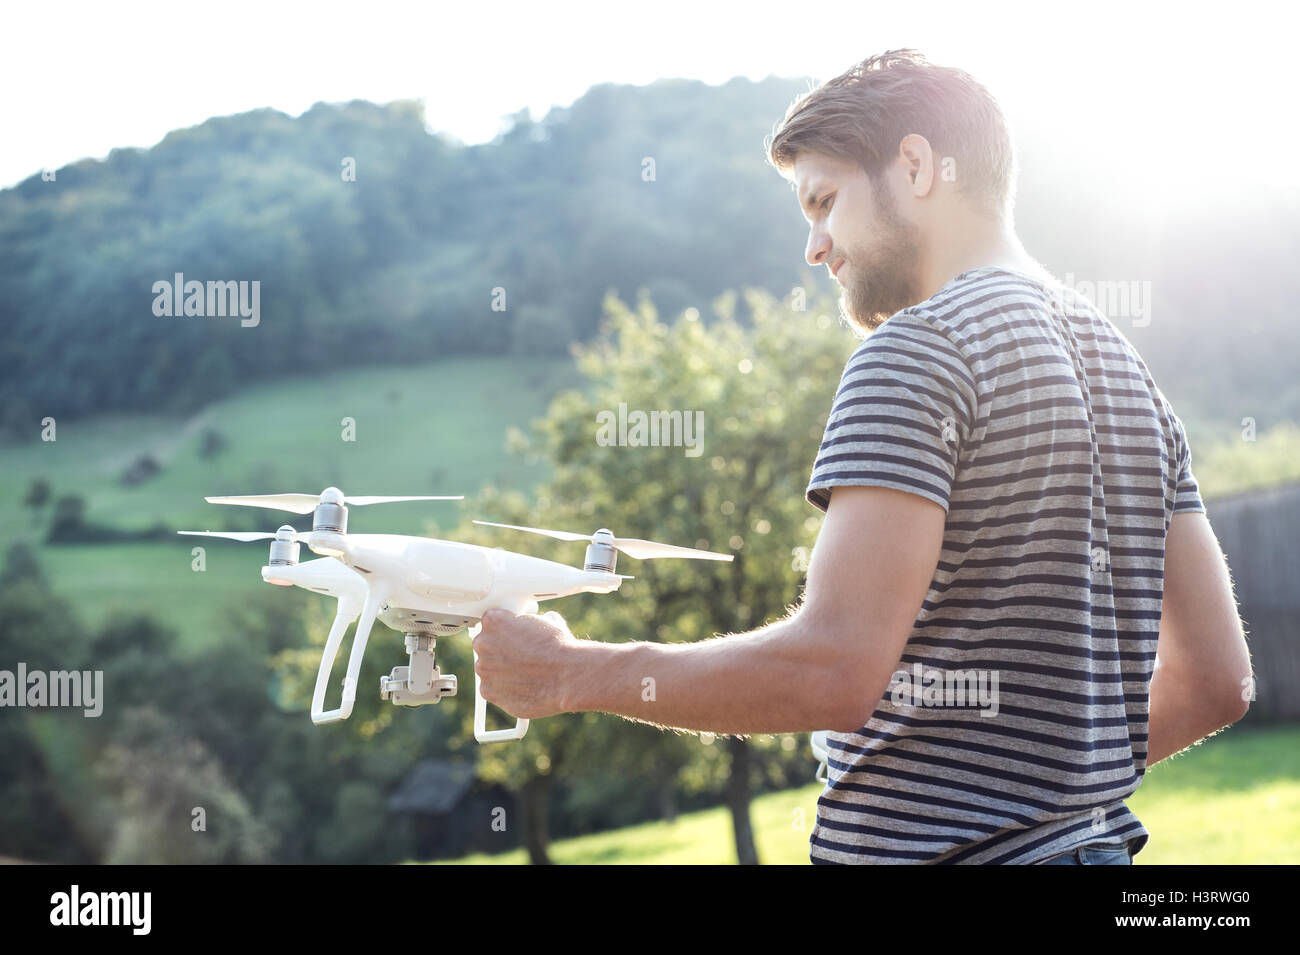 Young hipster man holding drone. Sunny green nature. - Stock Image